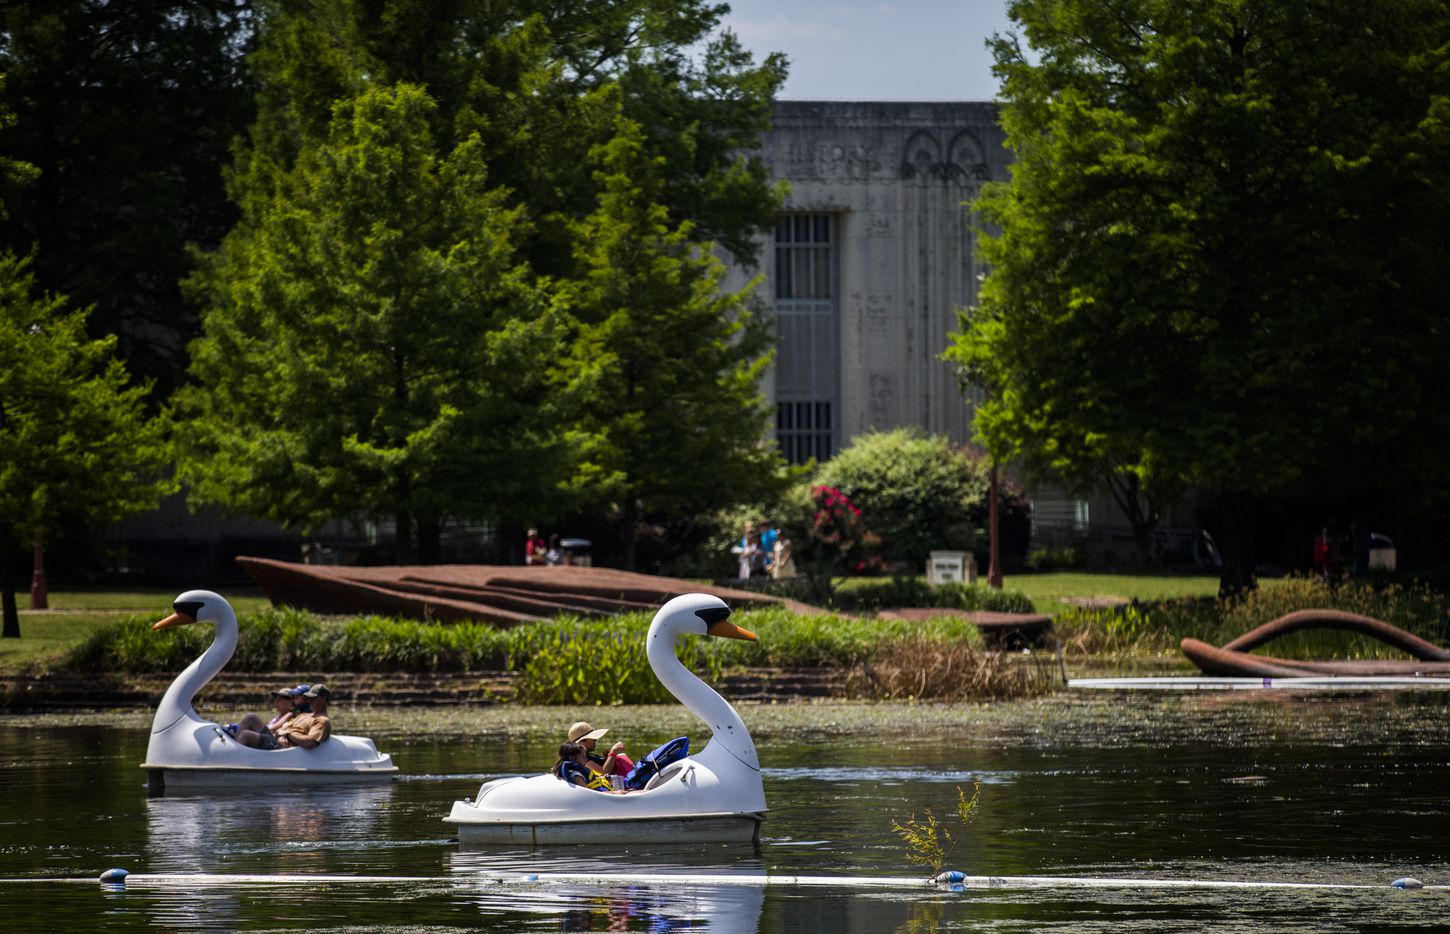 People ride in swan boats during the 27th Home Depot Asian Festival on Saturday, May 13, 2017 at Cotton Bowl Plaza in Dallas Fair Park.